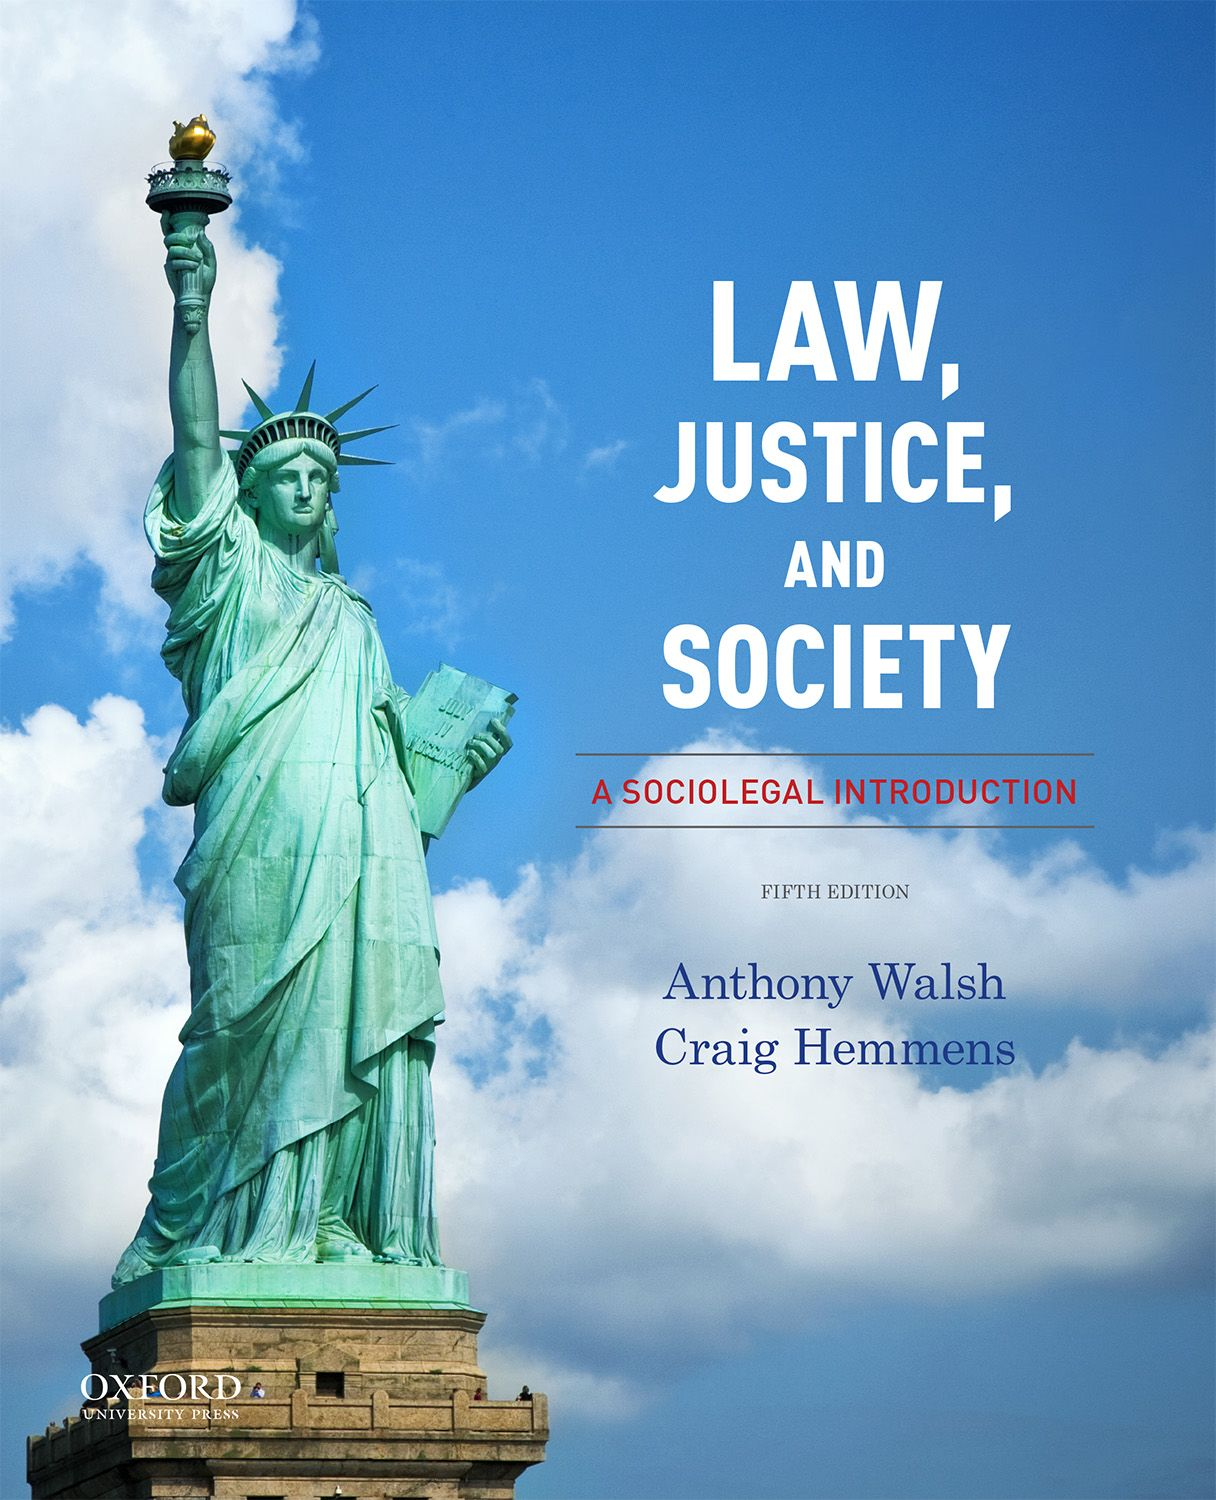 Law, Justice, and Society: A Sociolegal Introduction 5e Instructor Resources